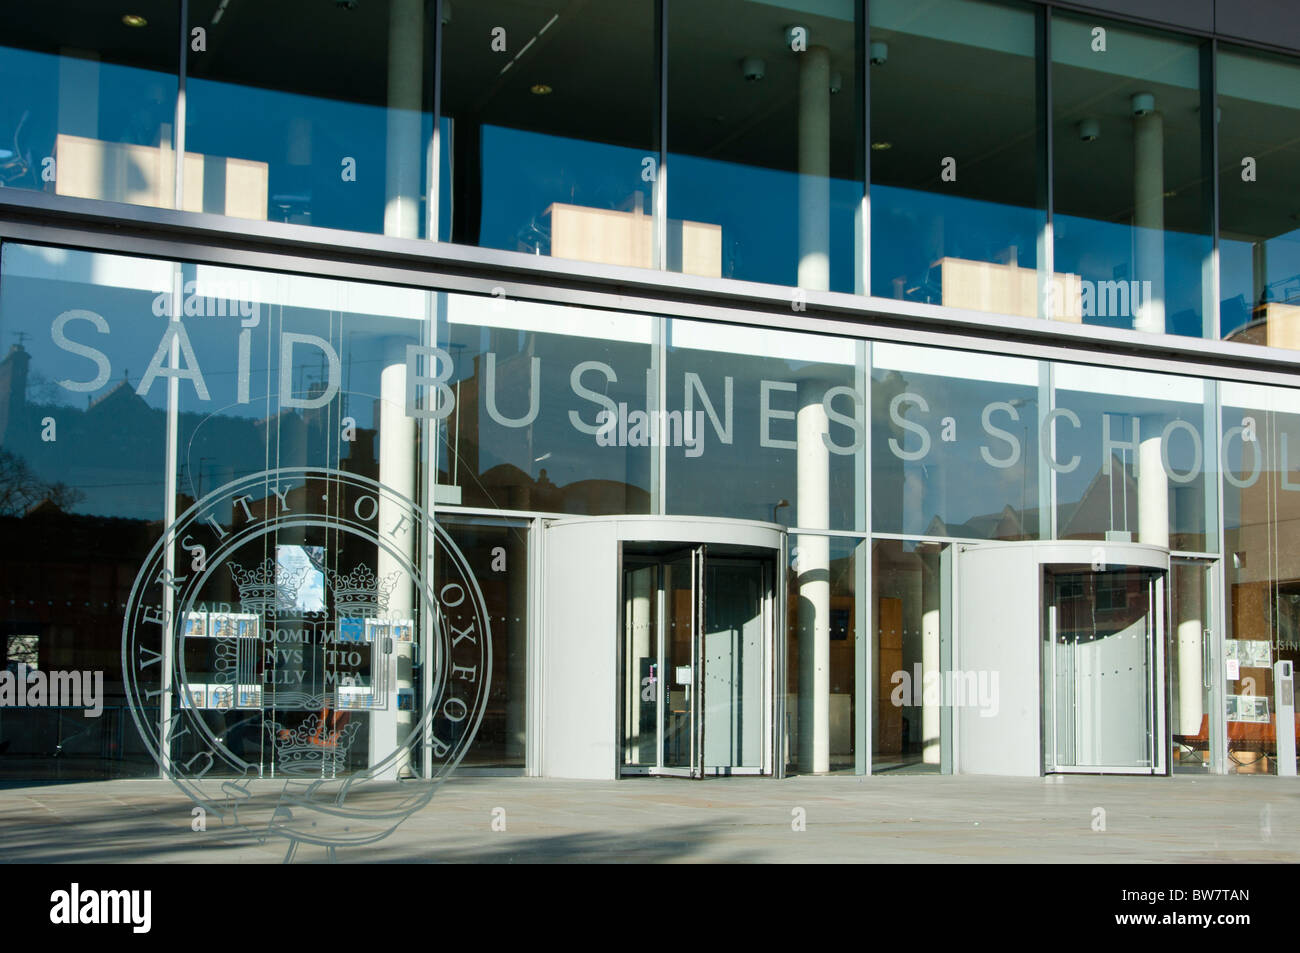 Image result for Said Business School at University of Oxford, UK.